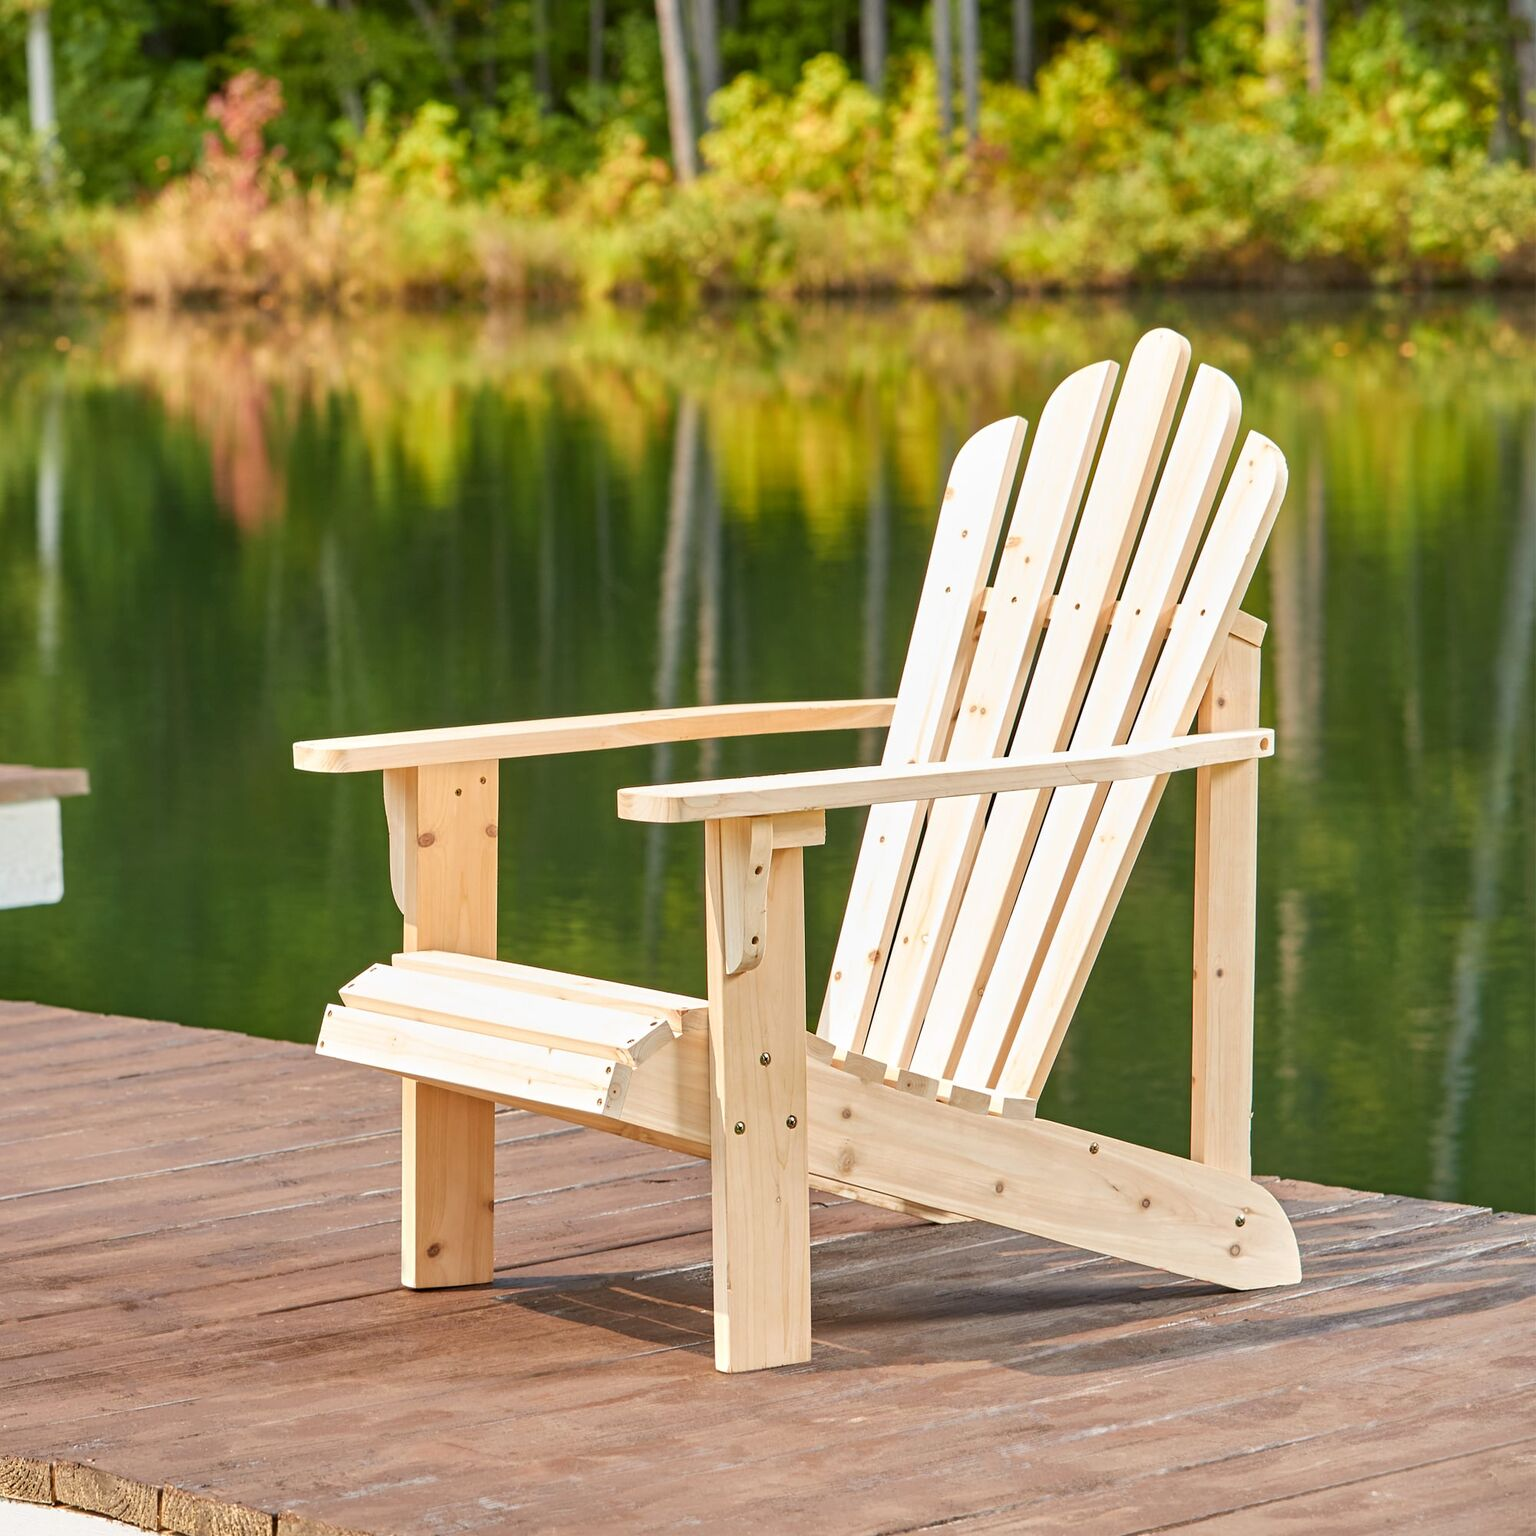 Shine Co 4611N 28.25 x 35 x 36 Inch Westport Adirondack Chair - Standard - Natural